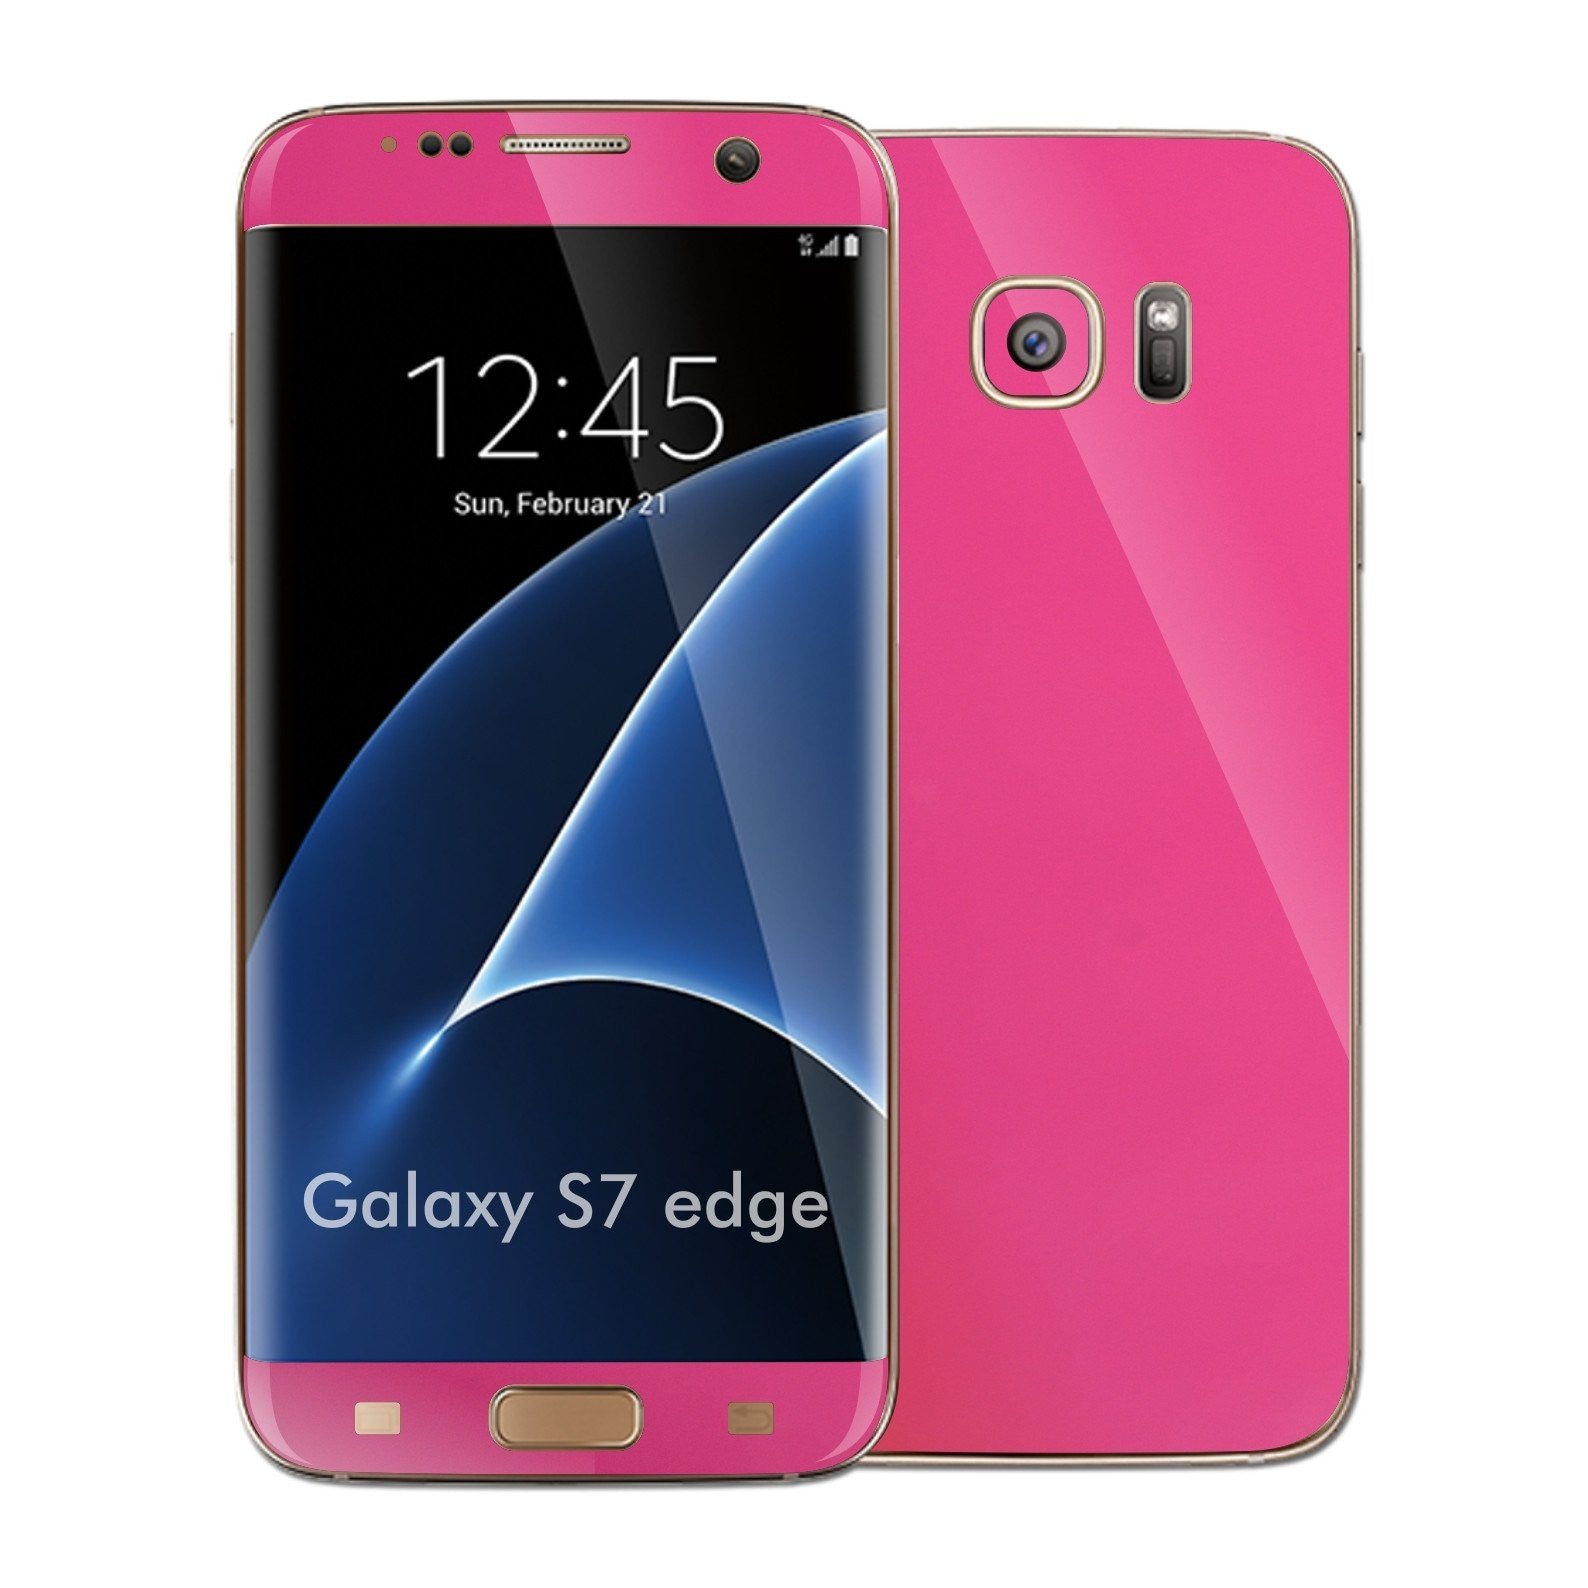 Samsung Galaxy S7 EDGE Glossy Magenta Skin Wrap Decal Sticker Cover Protector by EasySkinz